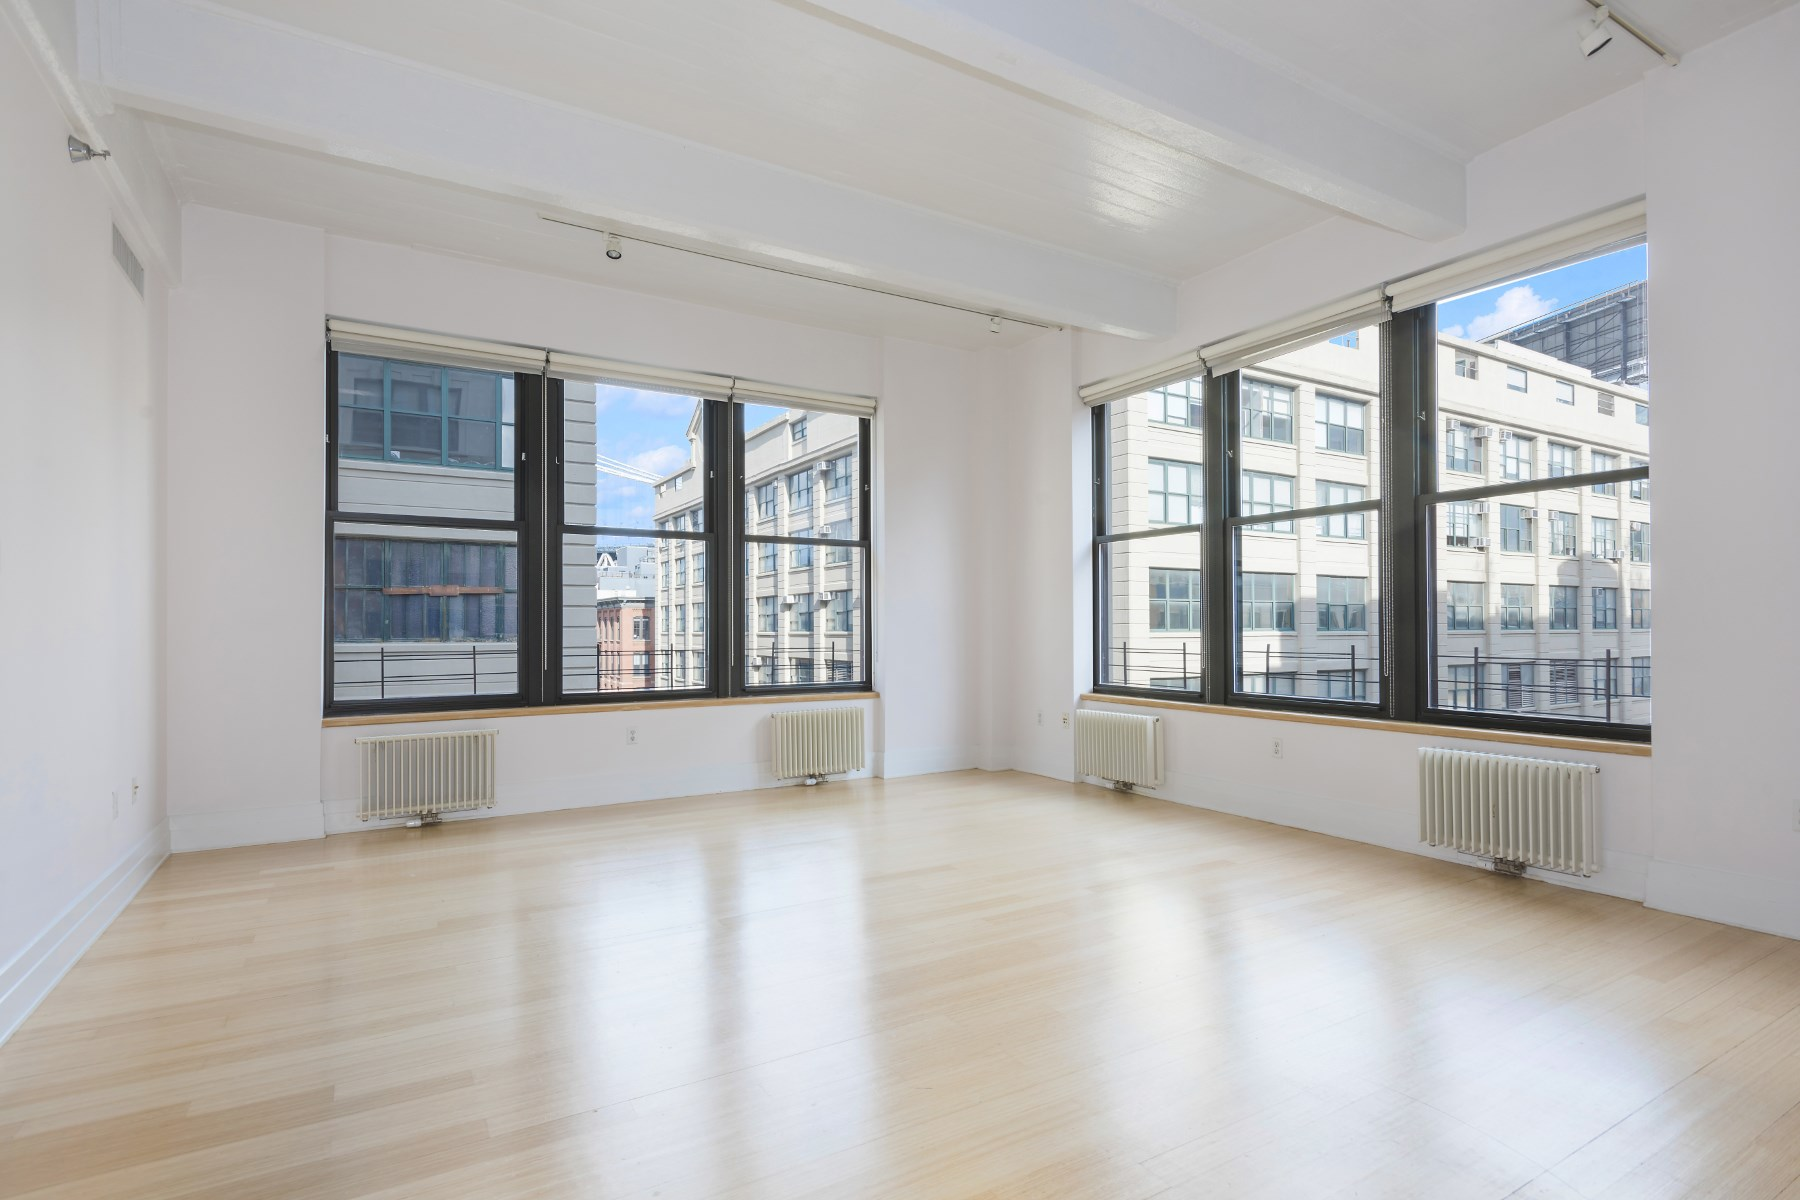 Property For Sale at Exquisite Sun-filled Dumbo Loft